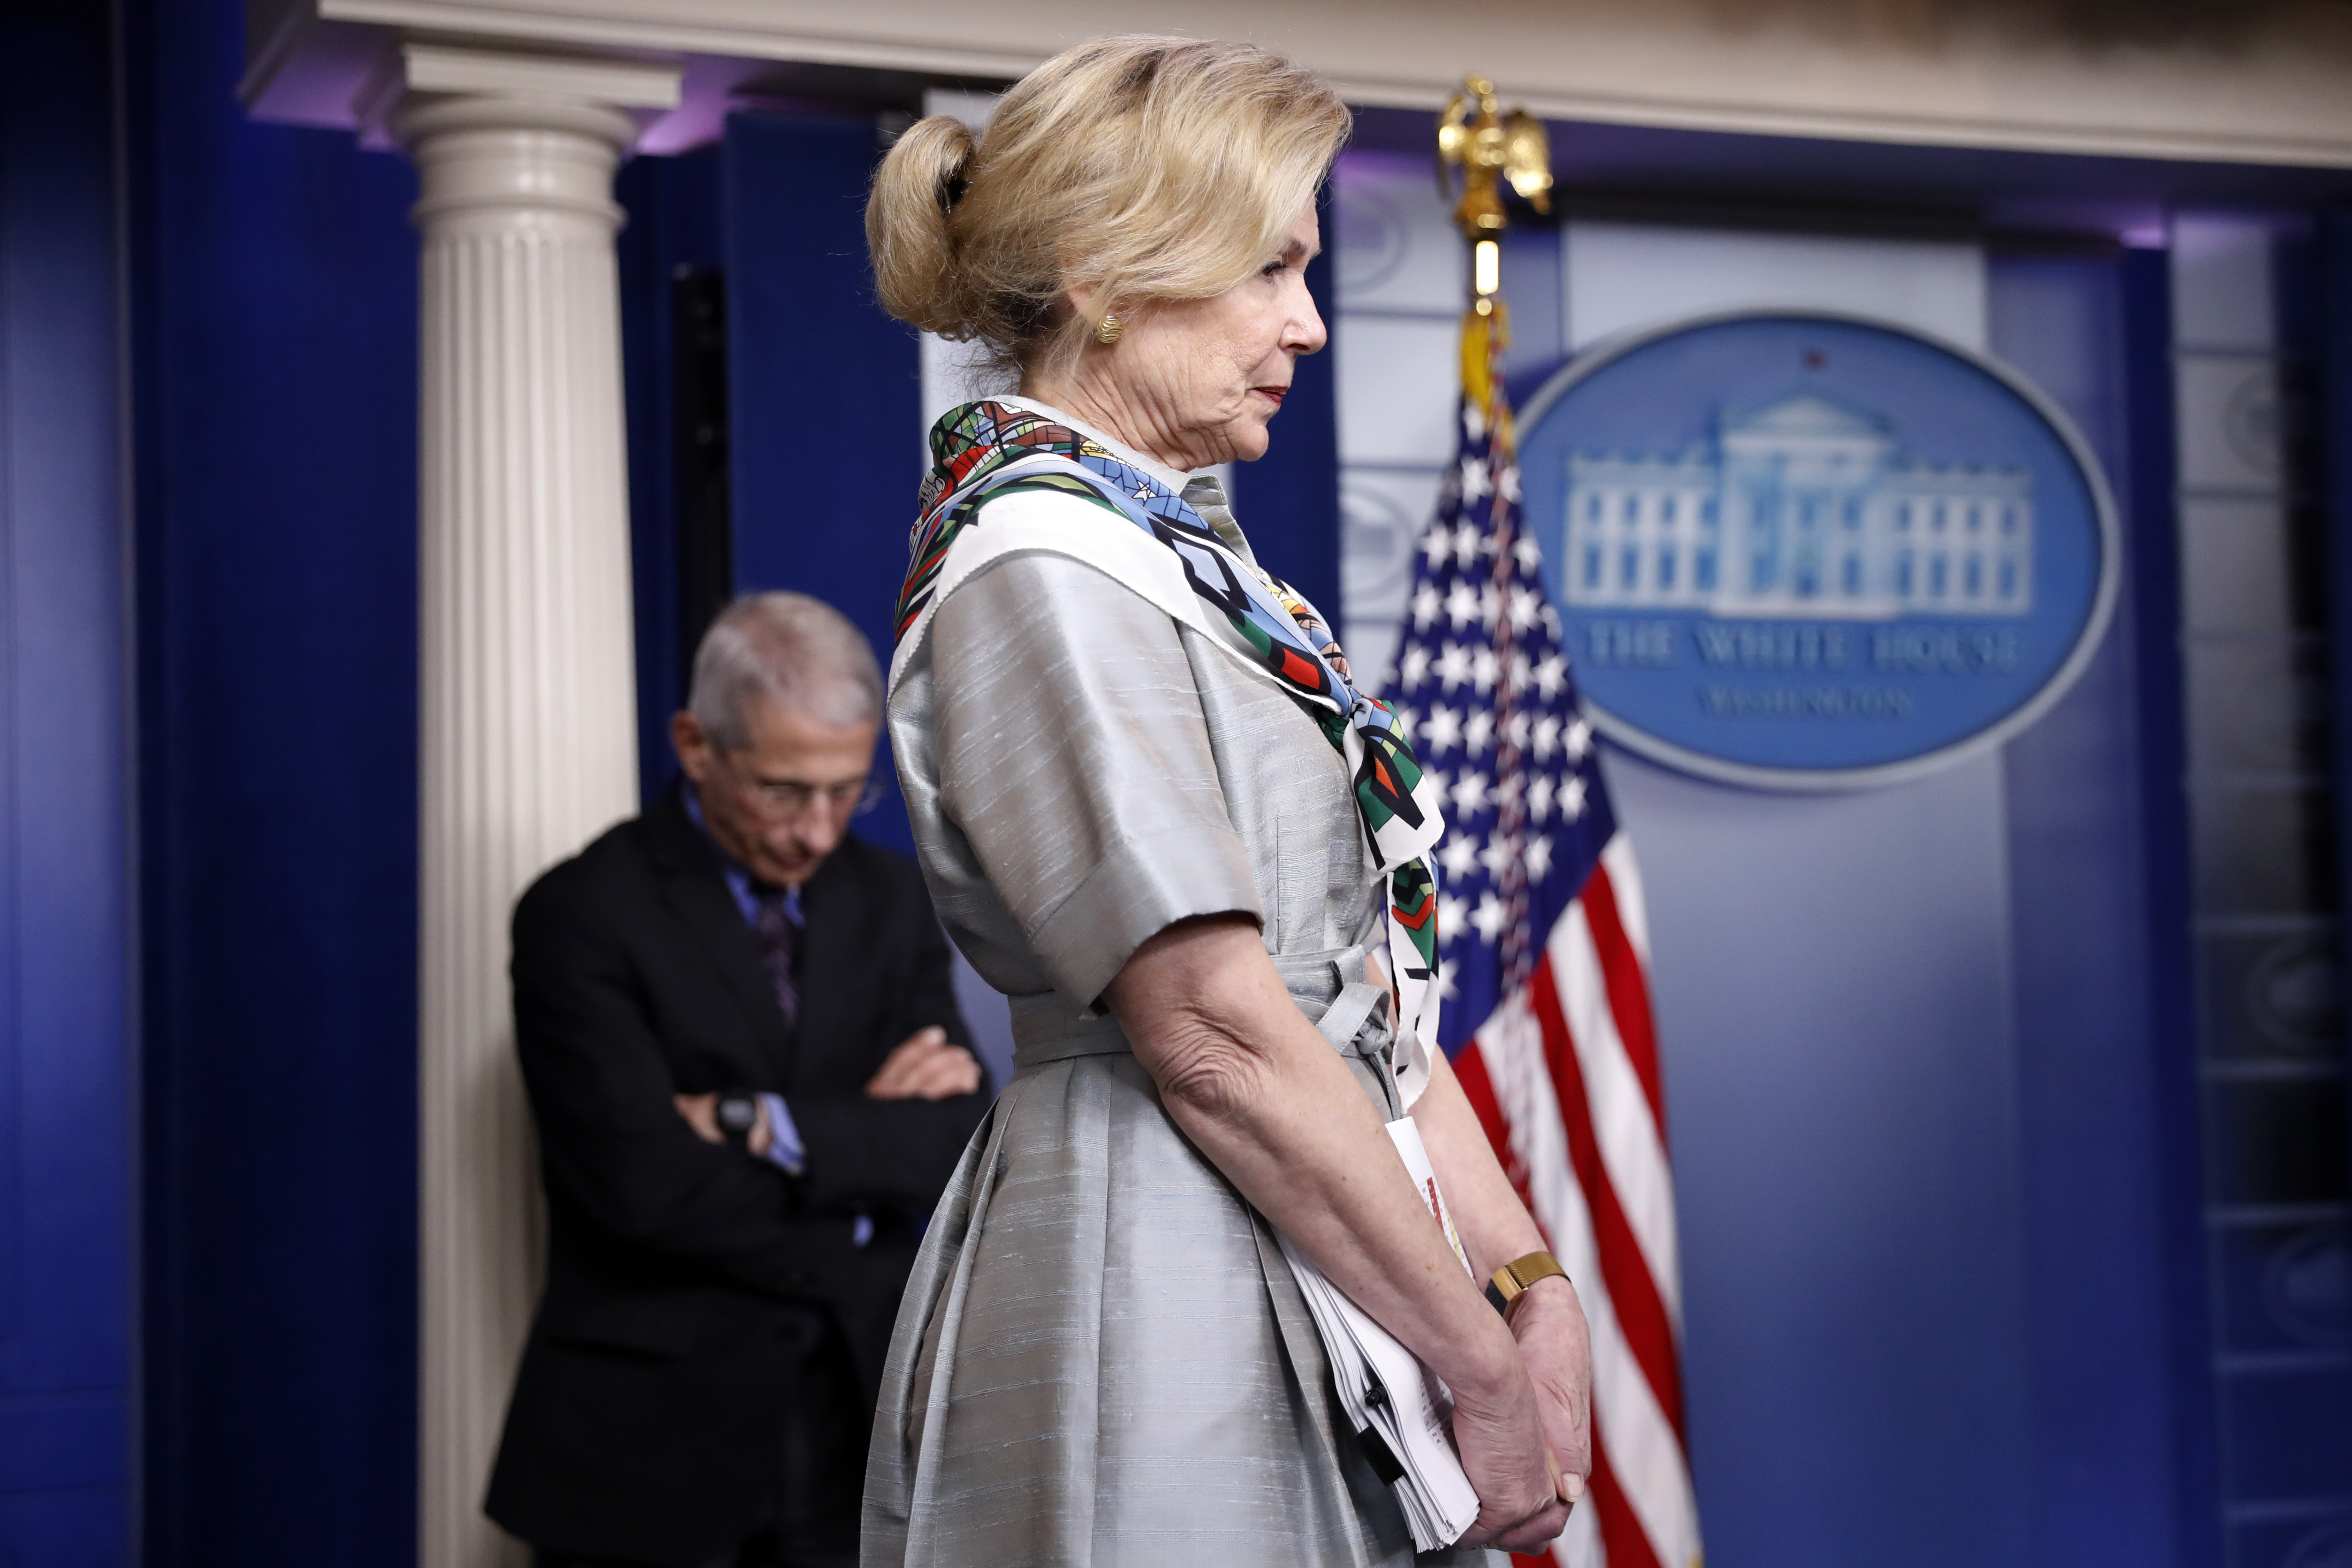 Dr. Deborah Birx, White House coronavirus response coordinator, and Dr. Anthony Fauci, director of the National Institute of Allergy and Infectious Diseases, listen during a coronavirus briefing at the White House on April 9.